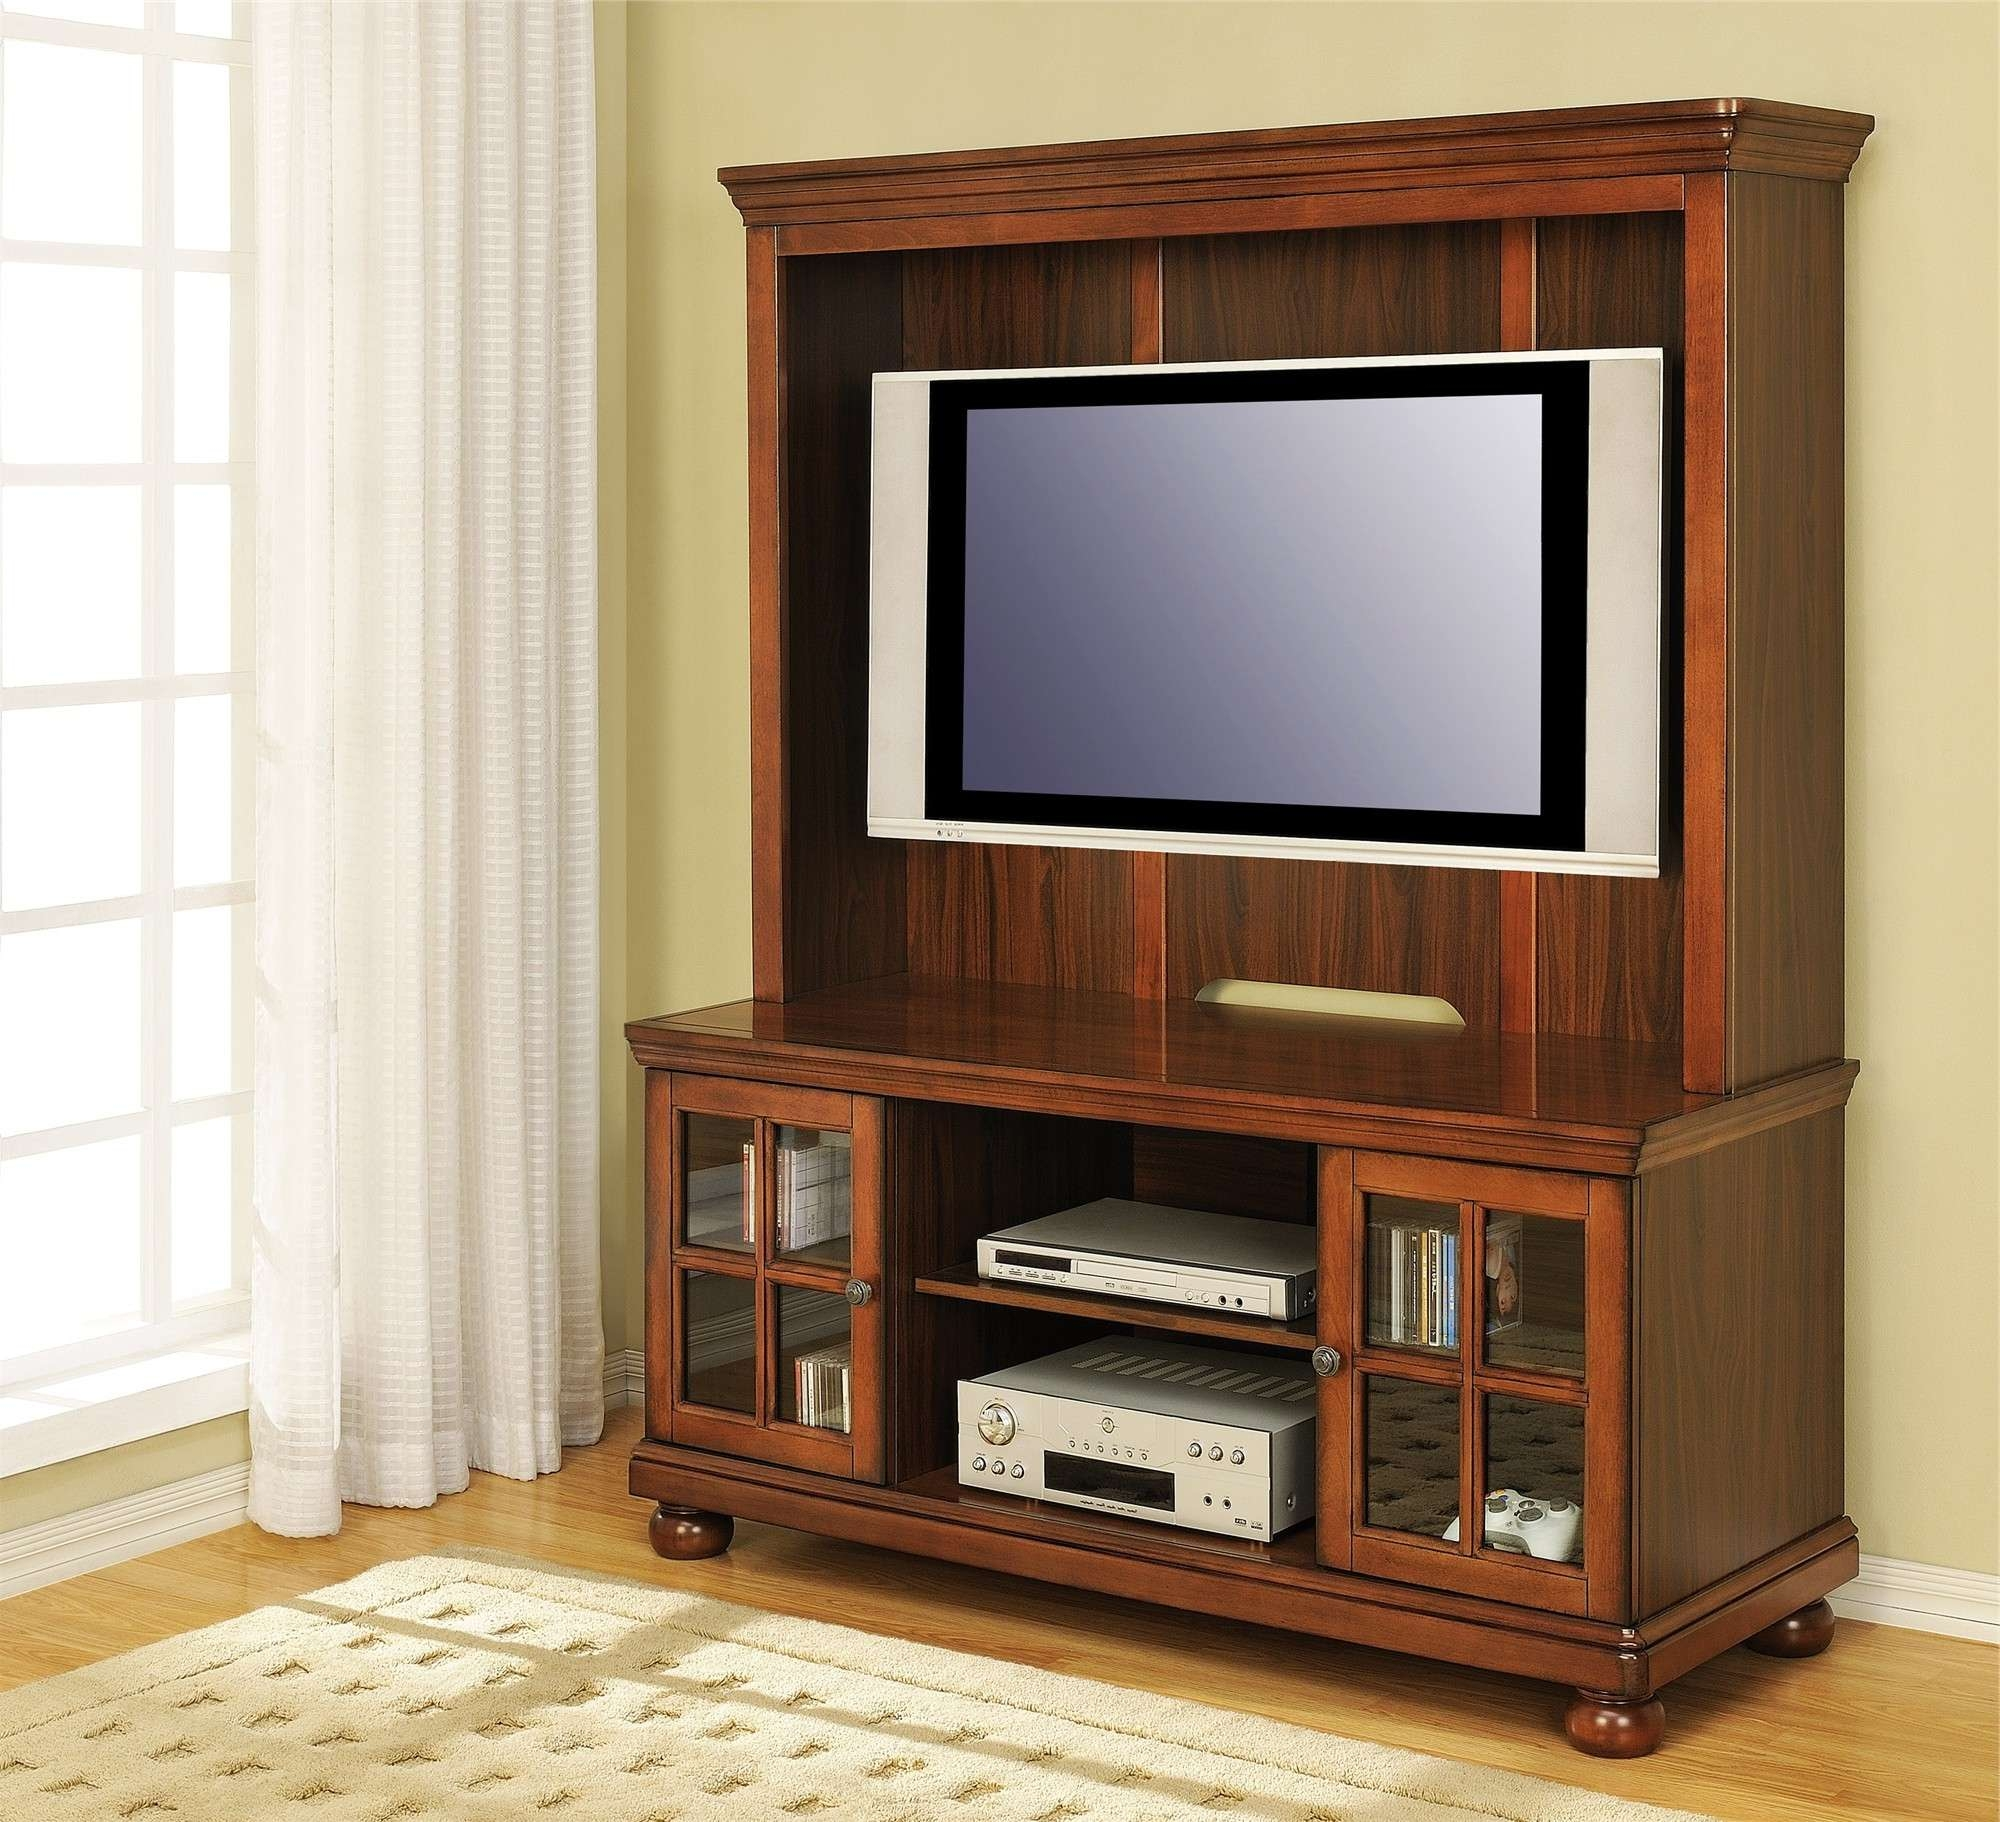 Corner Oak Tv Cabinets For Flat Screens With Doors • Corner Cabinets Throughout Corner Tv Cabinets For Flat Screens With Doors (View 4 of 20)